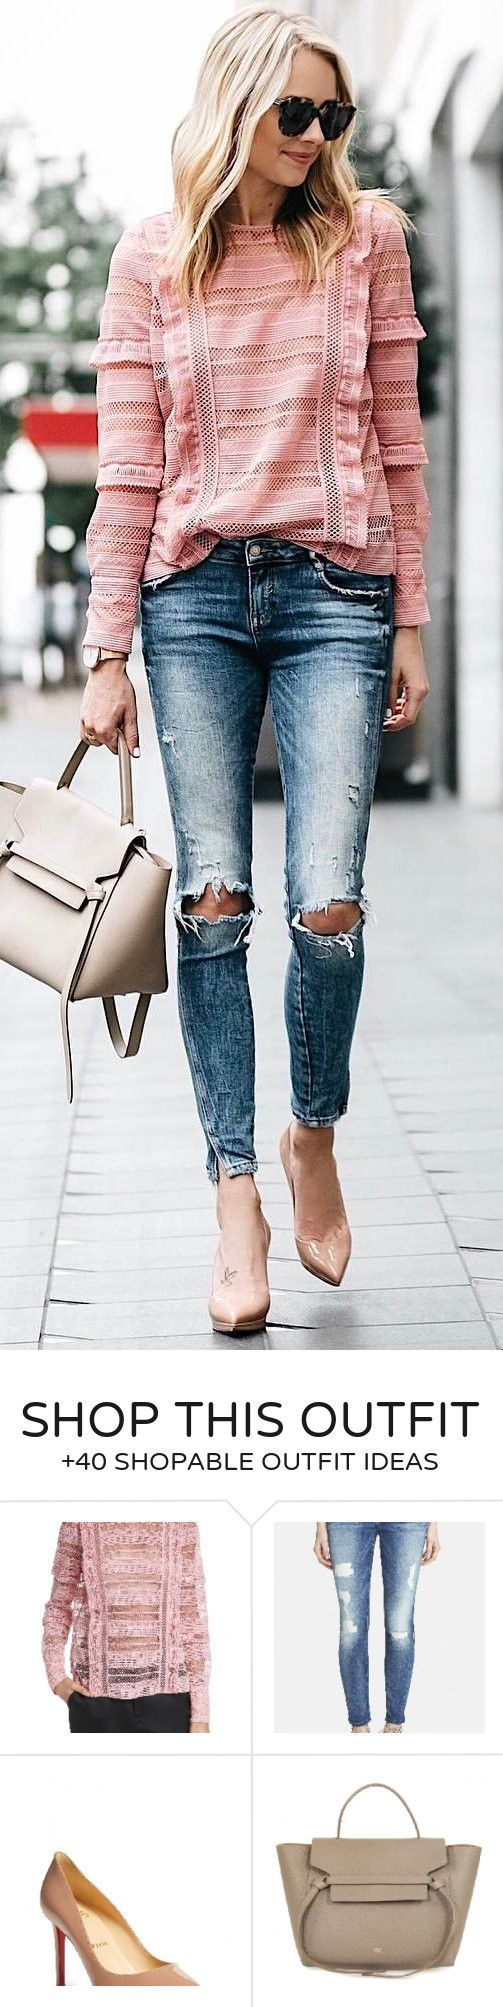 Summer outfits pink ruffle top destroyed skinny jeans nude pumps